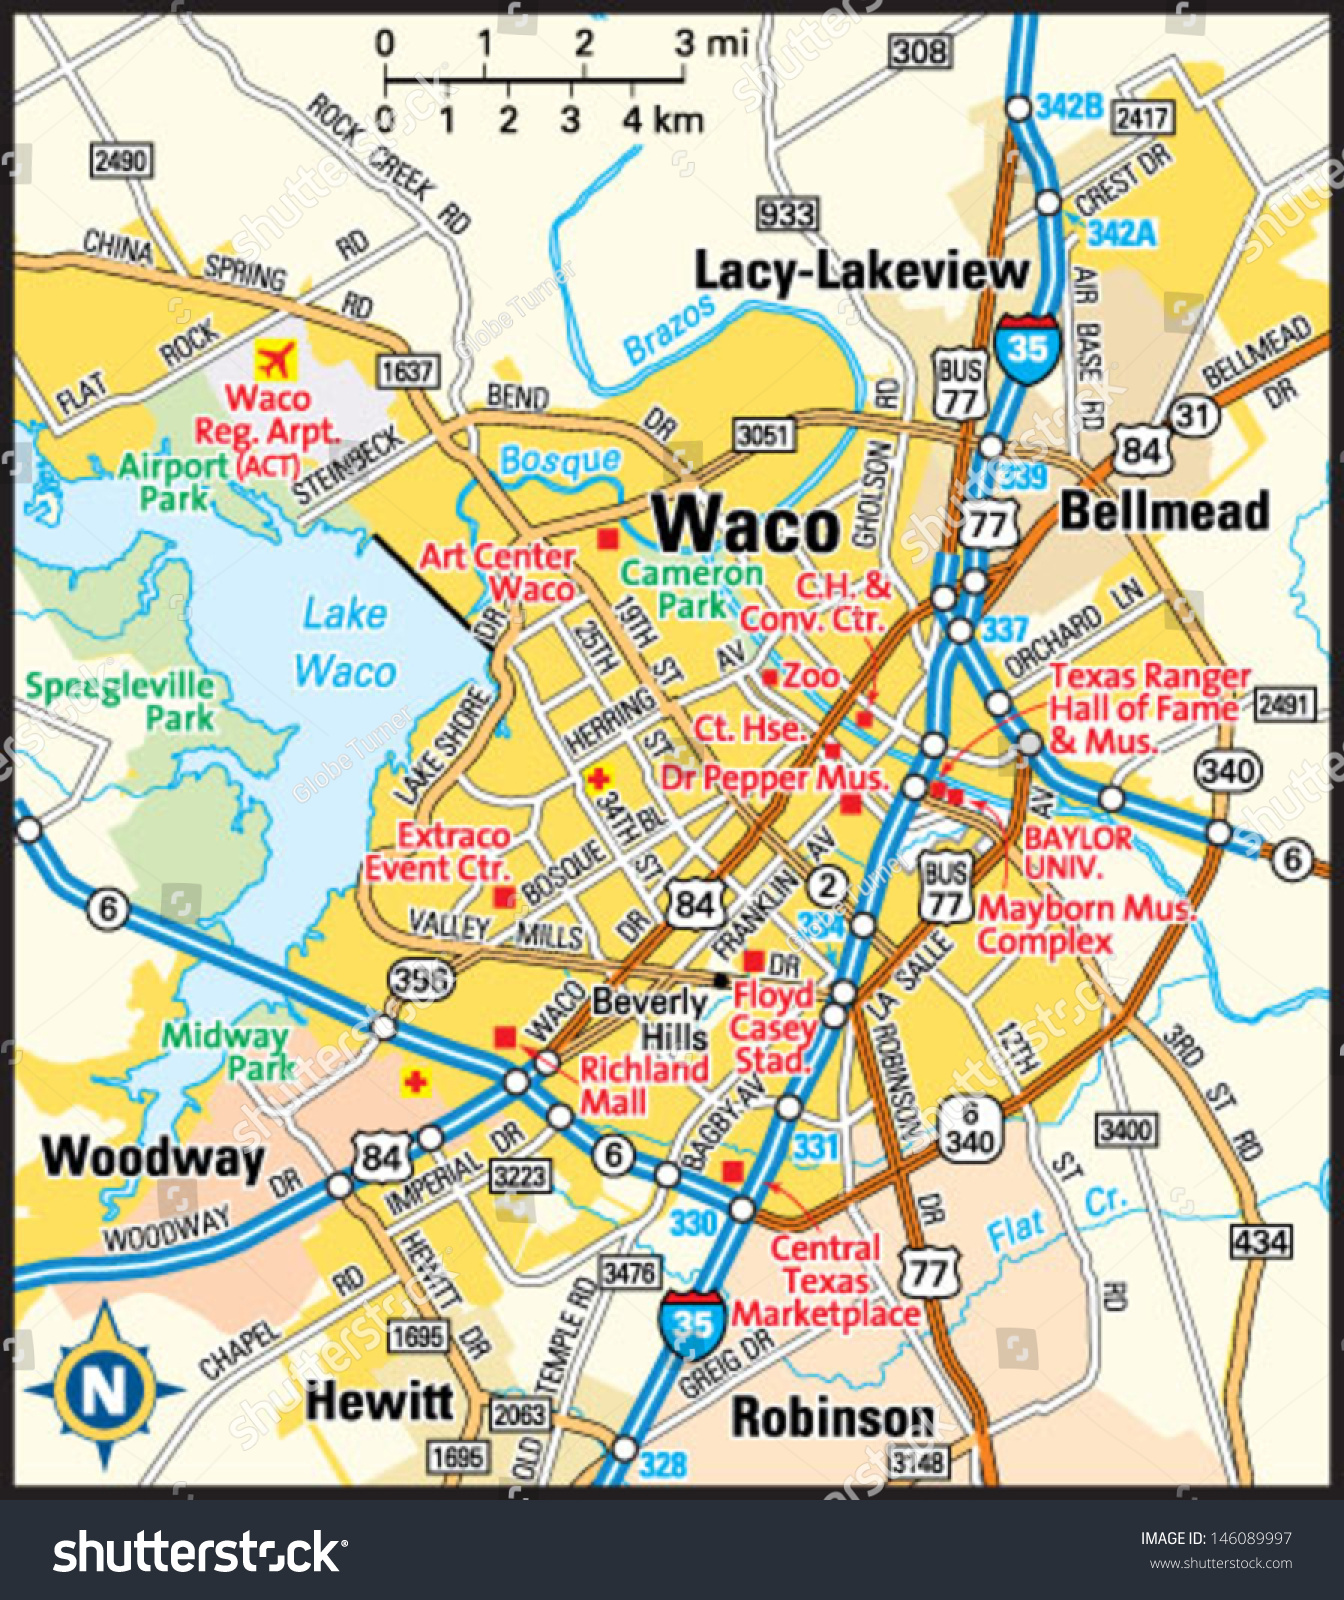 Map Of Waco Tx Map Of Waco Texas | Business Ideas 2013 Map Of Waco Tx